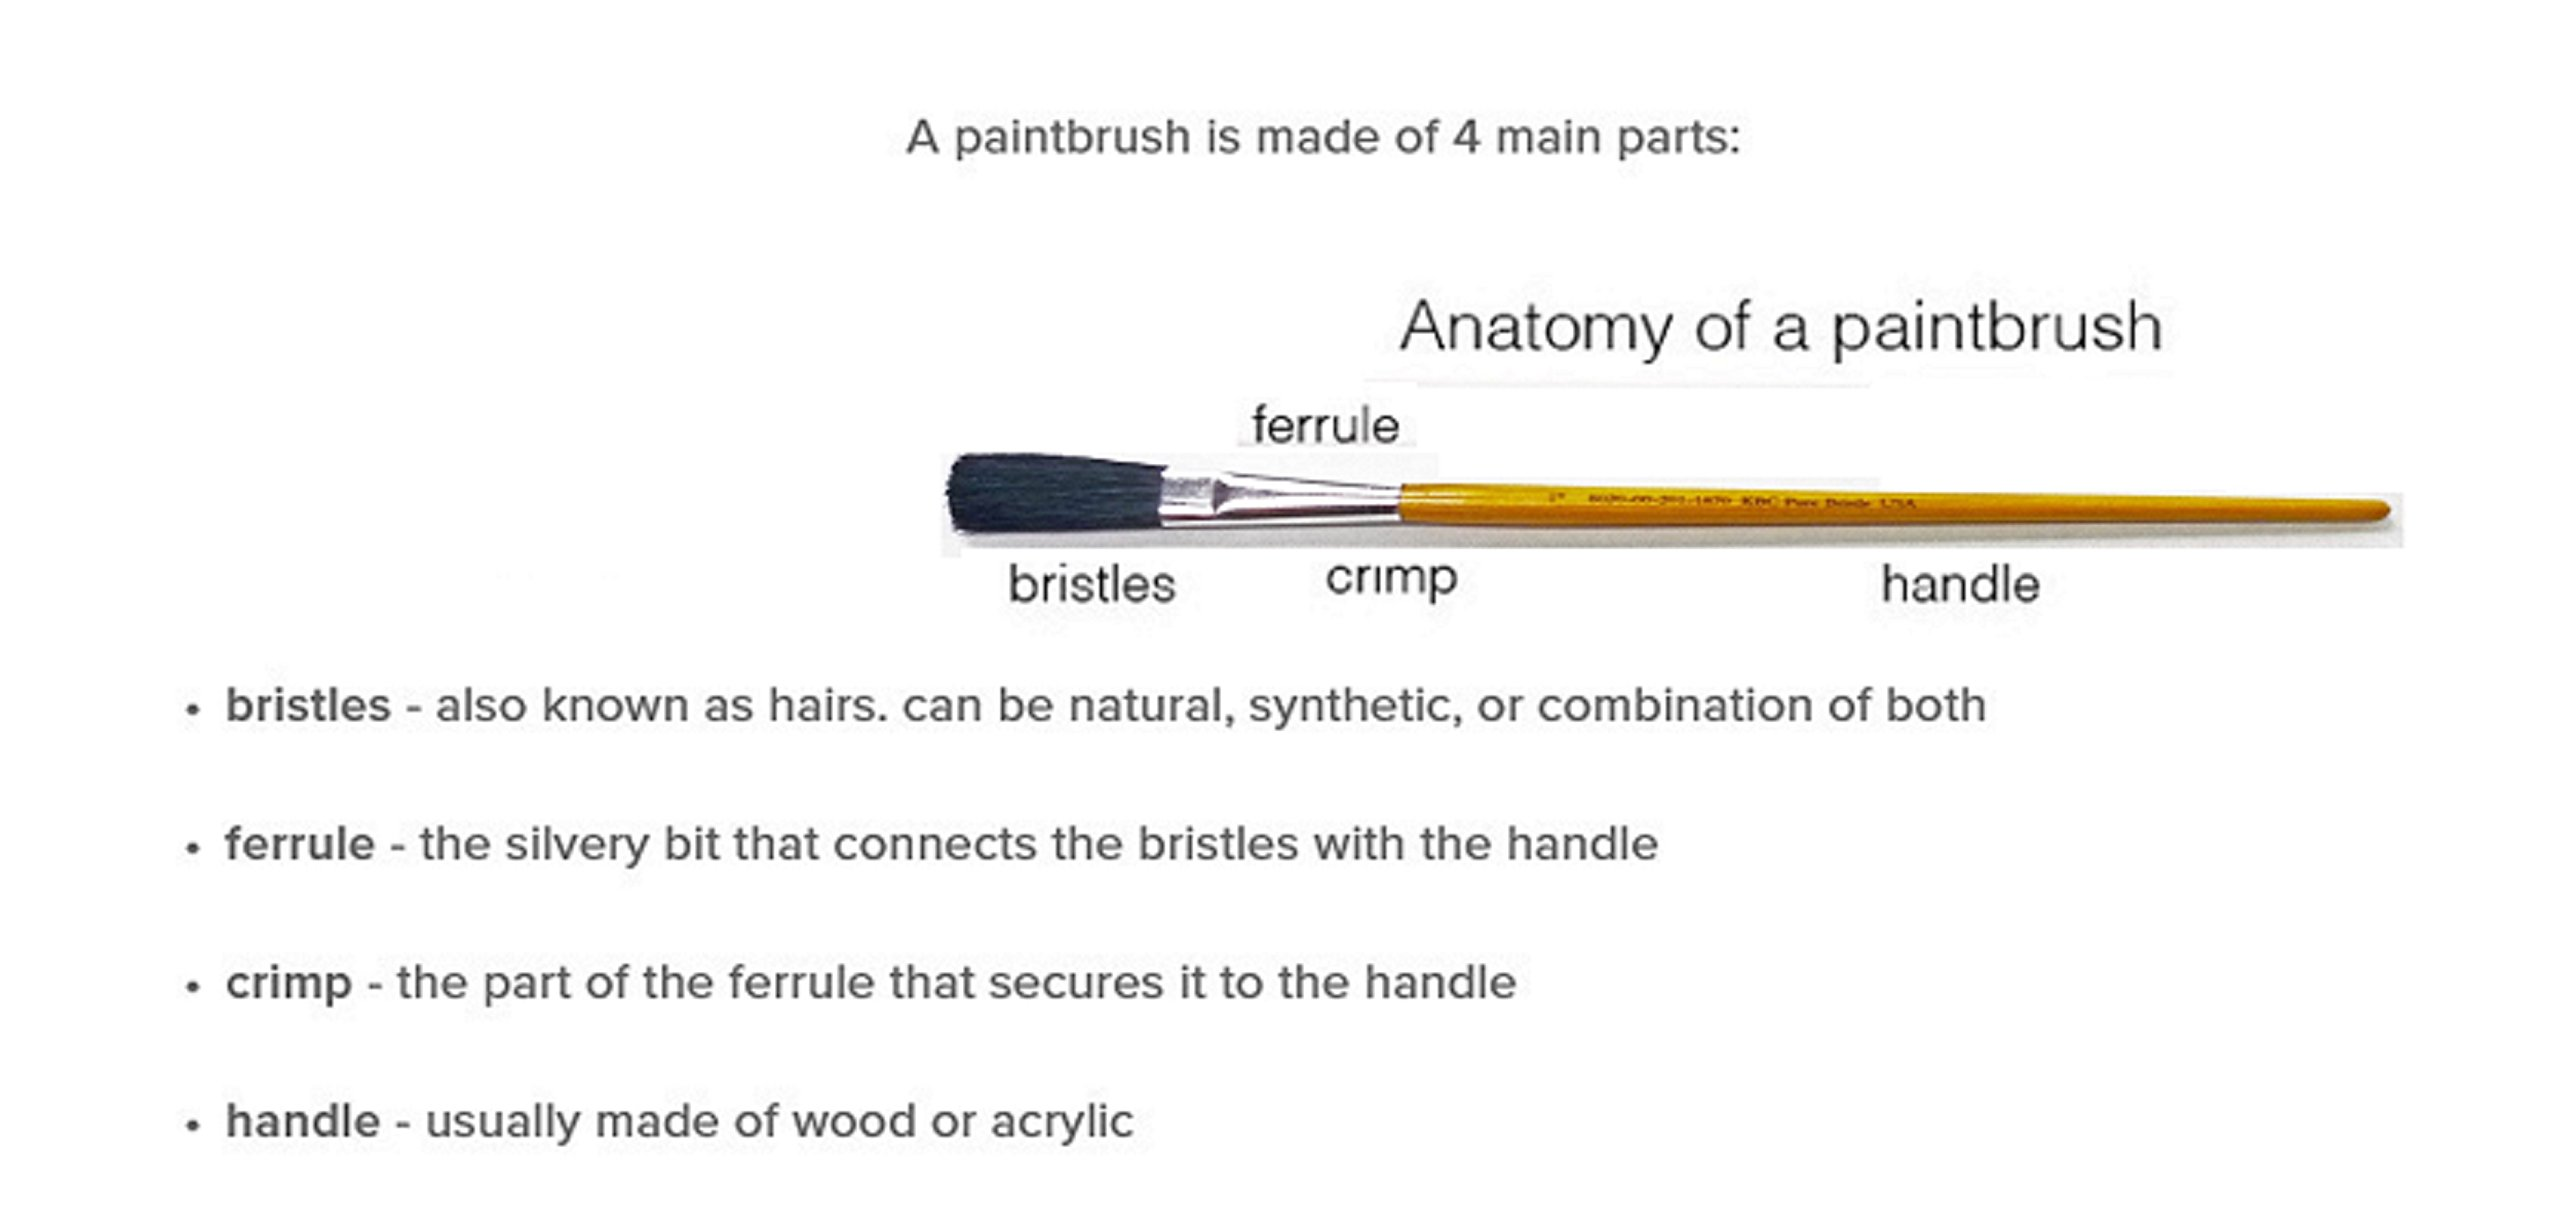 1'' Fitch China Bristle Wood Handle Artist Paint Brush for Acrylic, Oil, Watercolor, Gouache and Plain Air Painting (PACK-OF-100)